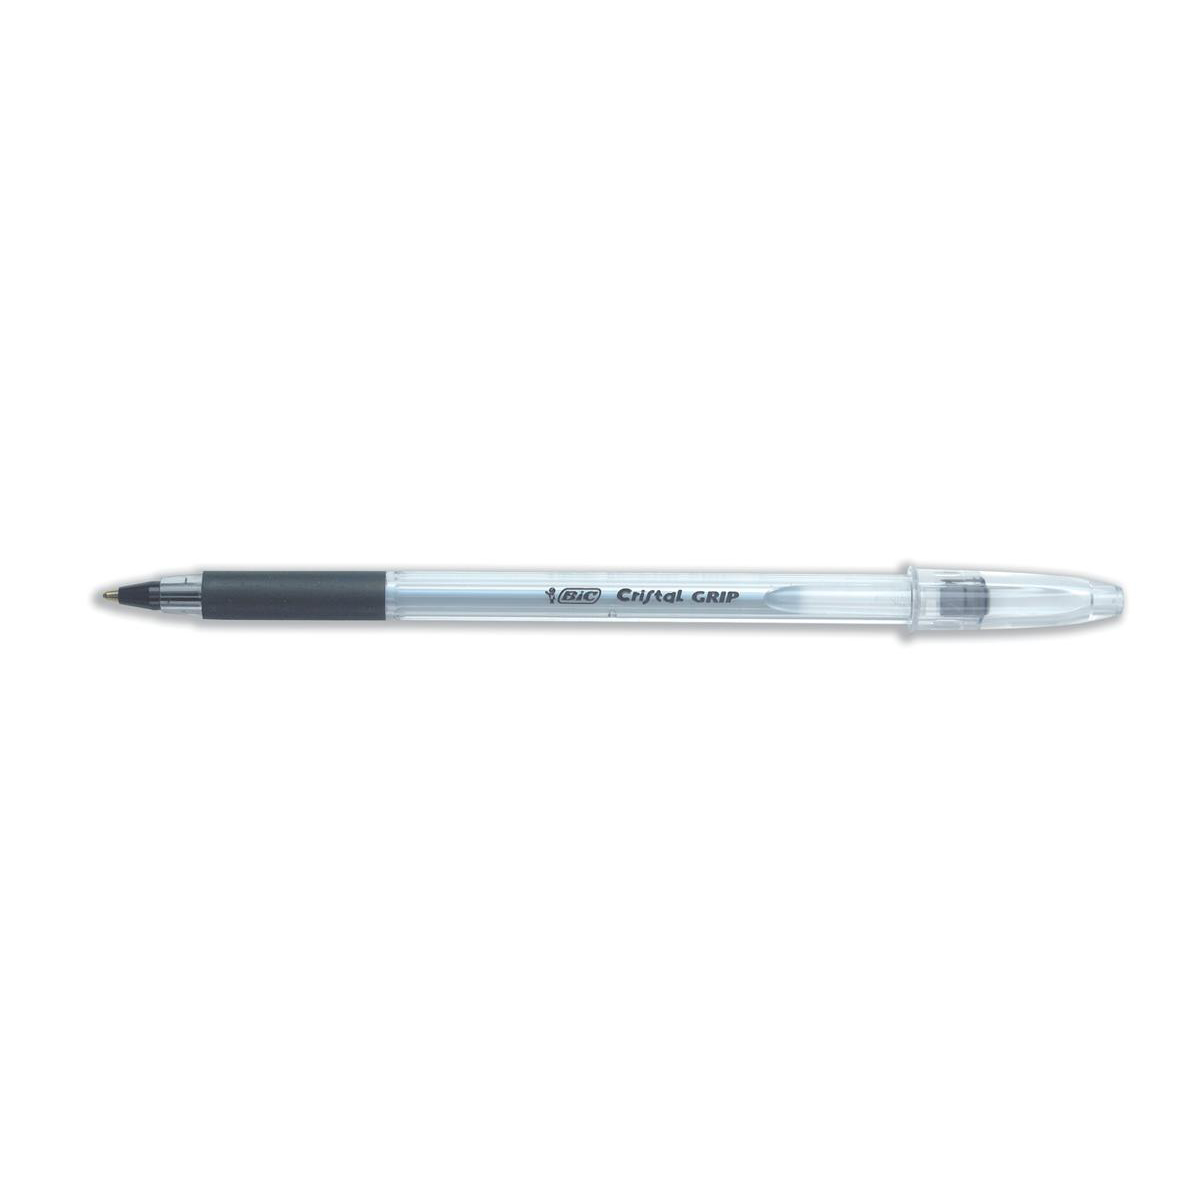 Bic Cristal Grip Ball Pen Medium Clear Barrel 1.0mm Tip 0.32mm Line Black Ref 802800 [Pack 20]